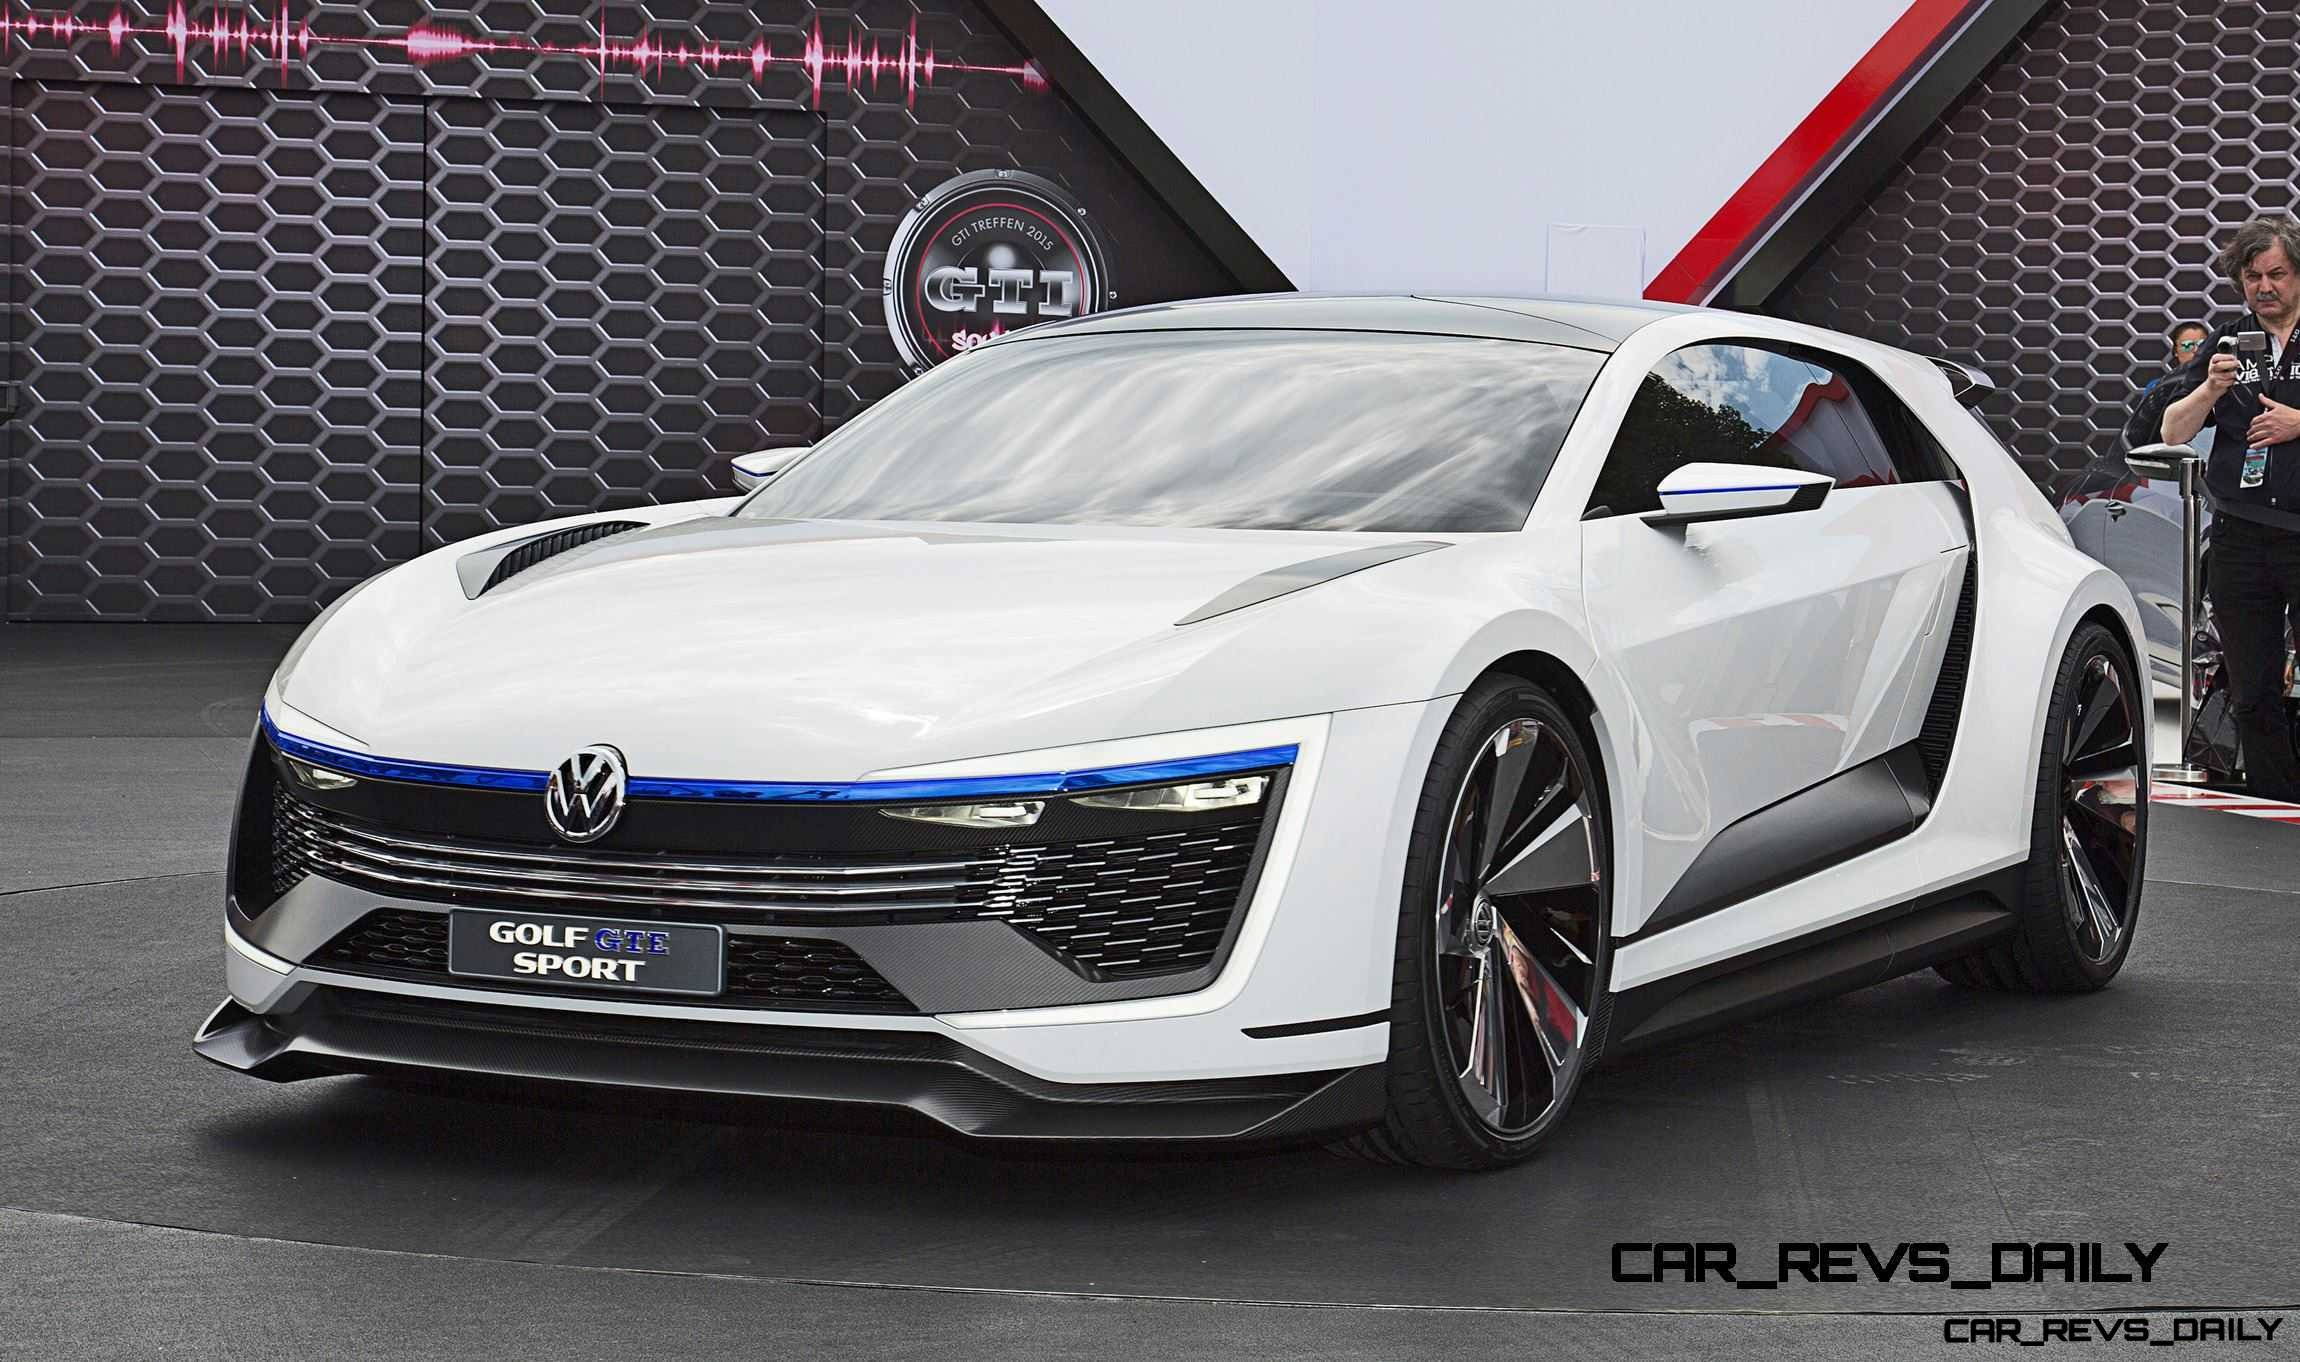 Volkswagen Sports Car Models 2015 Vw Golf Gte Sport Concept . Volkswagen  Sports Car Models .